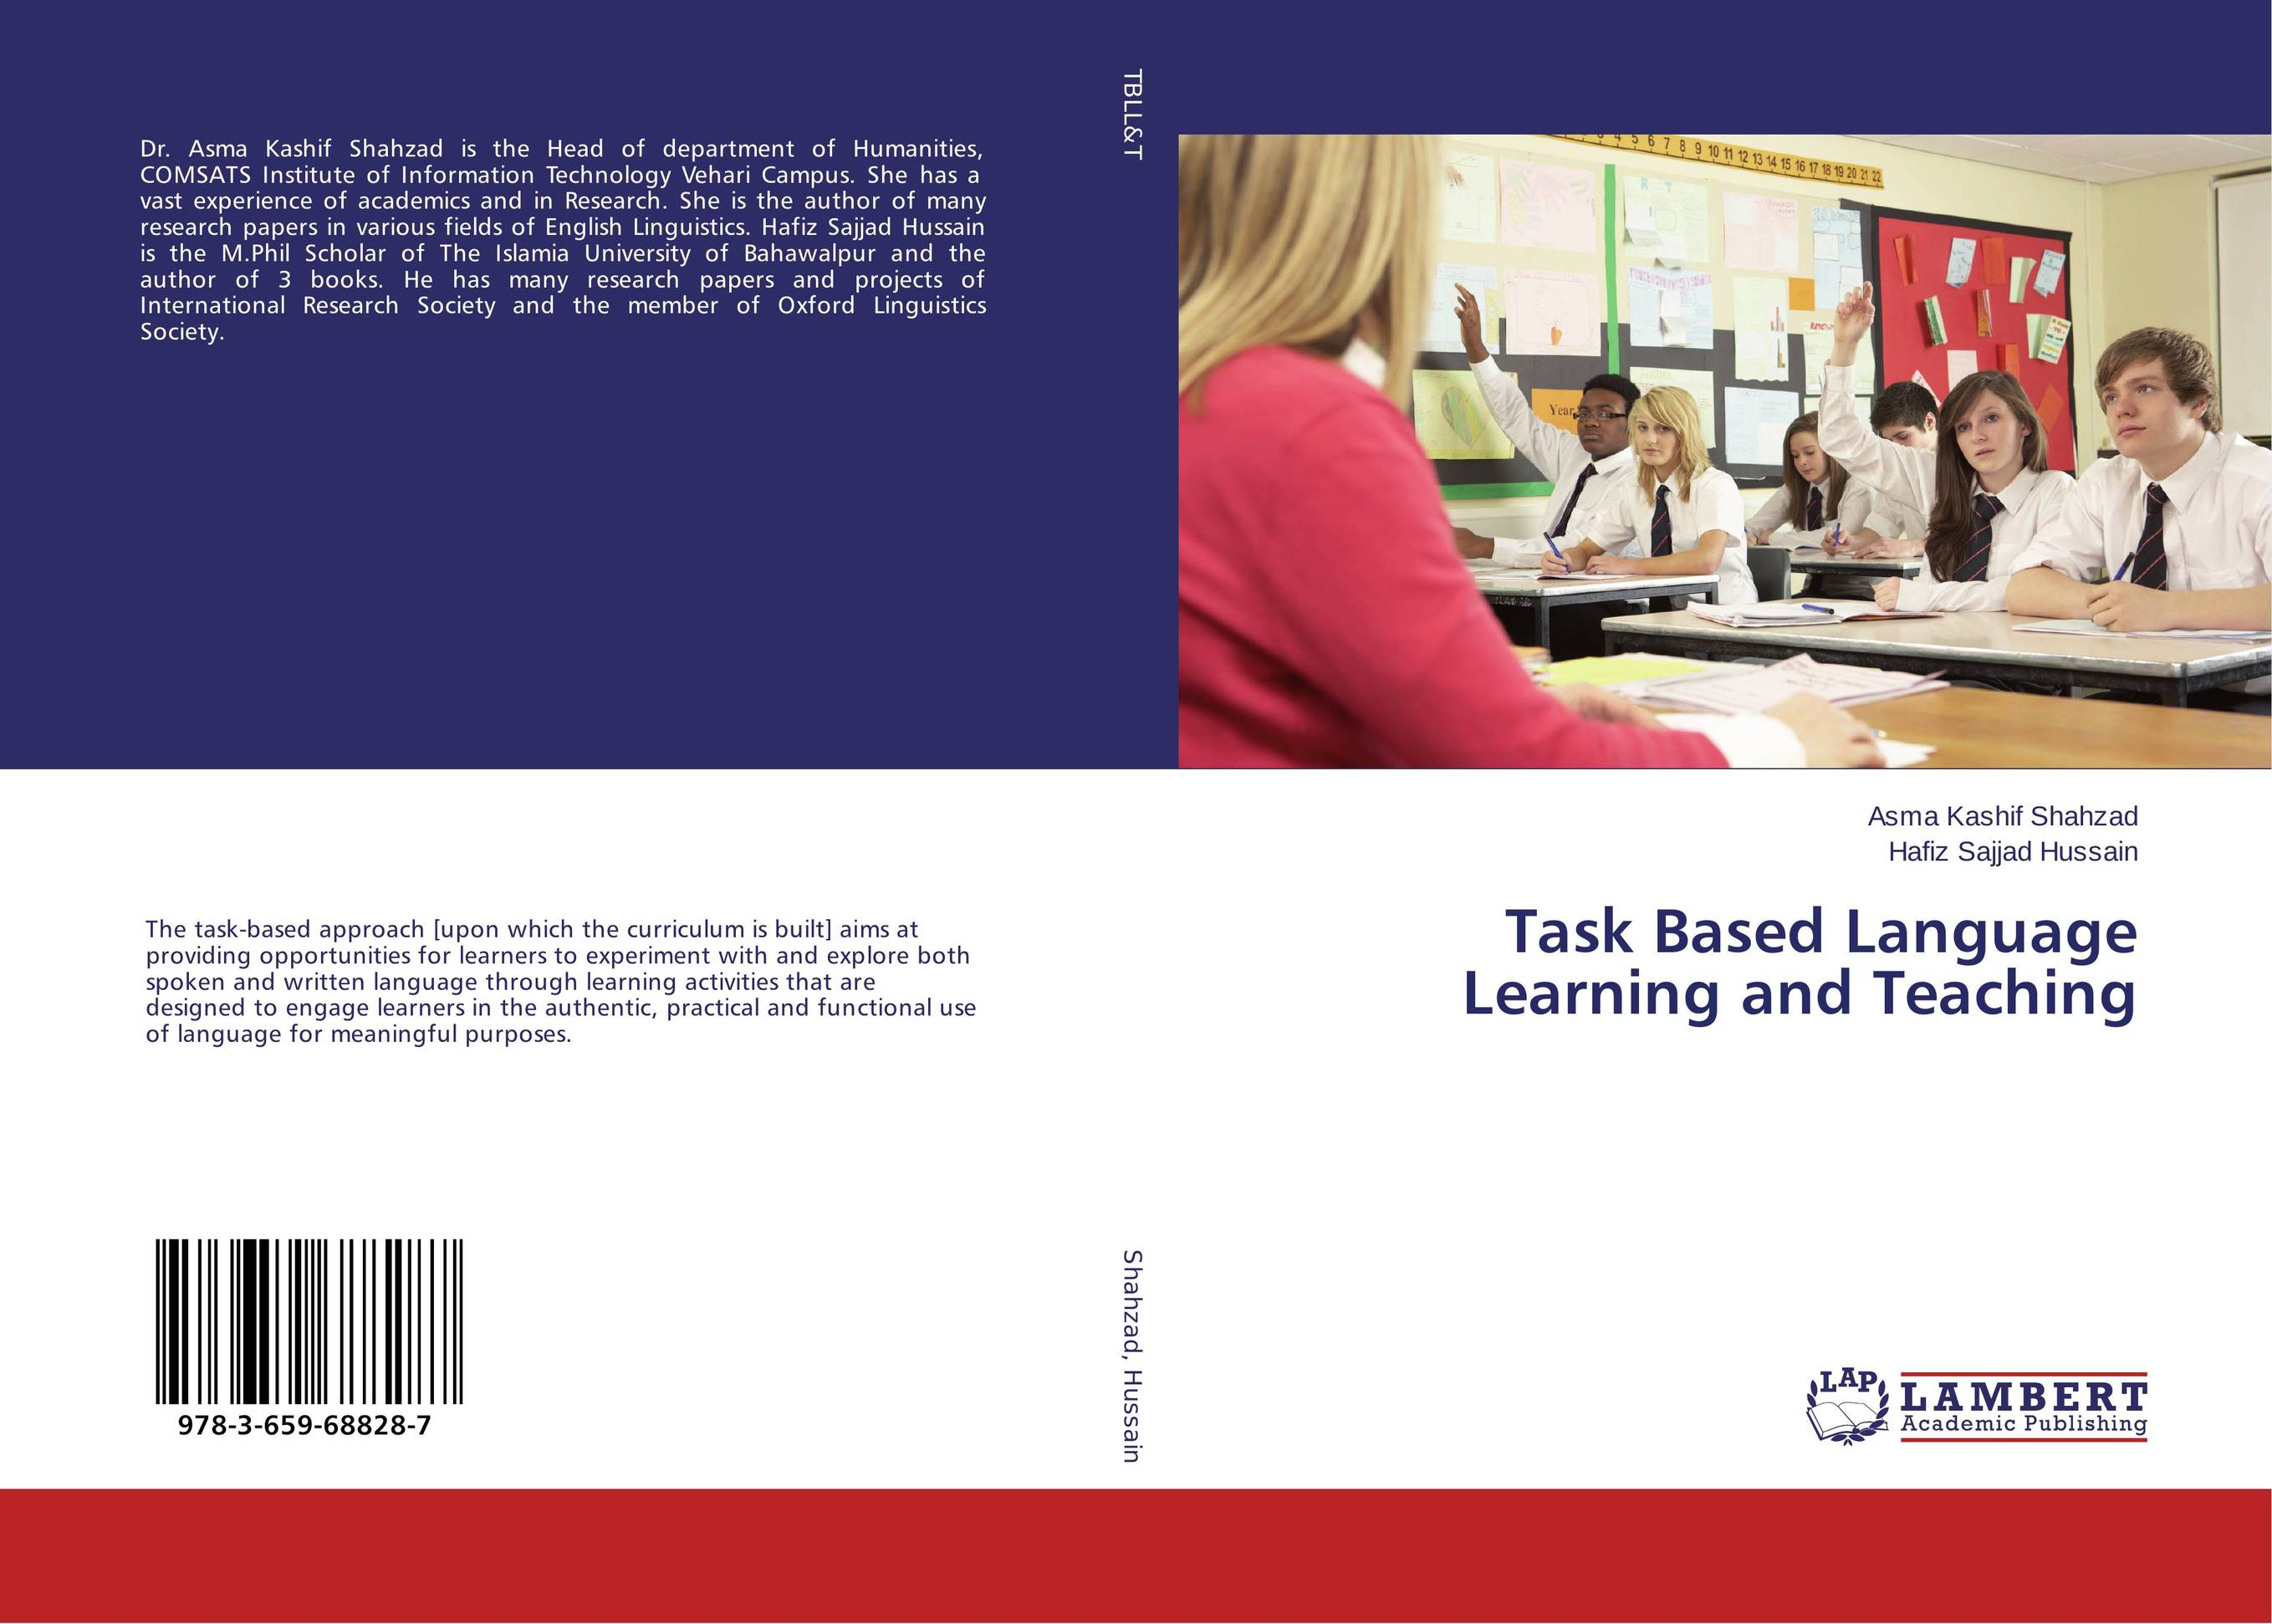 Task Based Language Learning and Teaching learner autonomy and web based language learning wbll